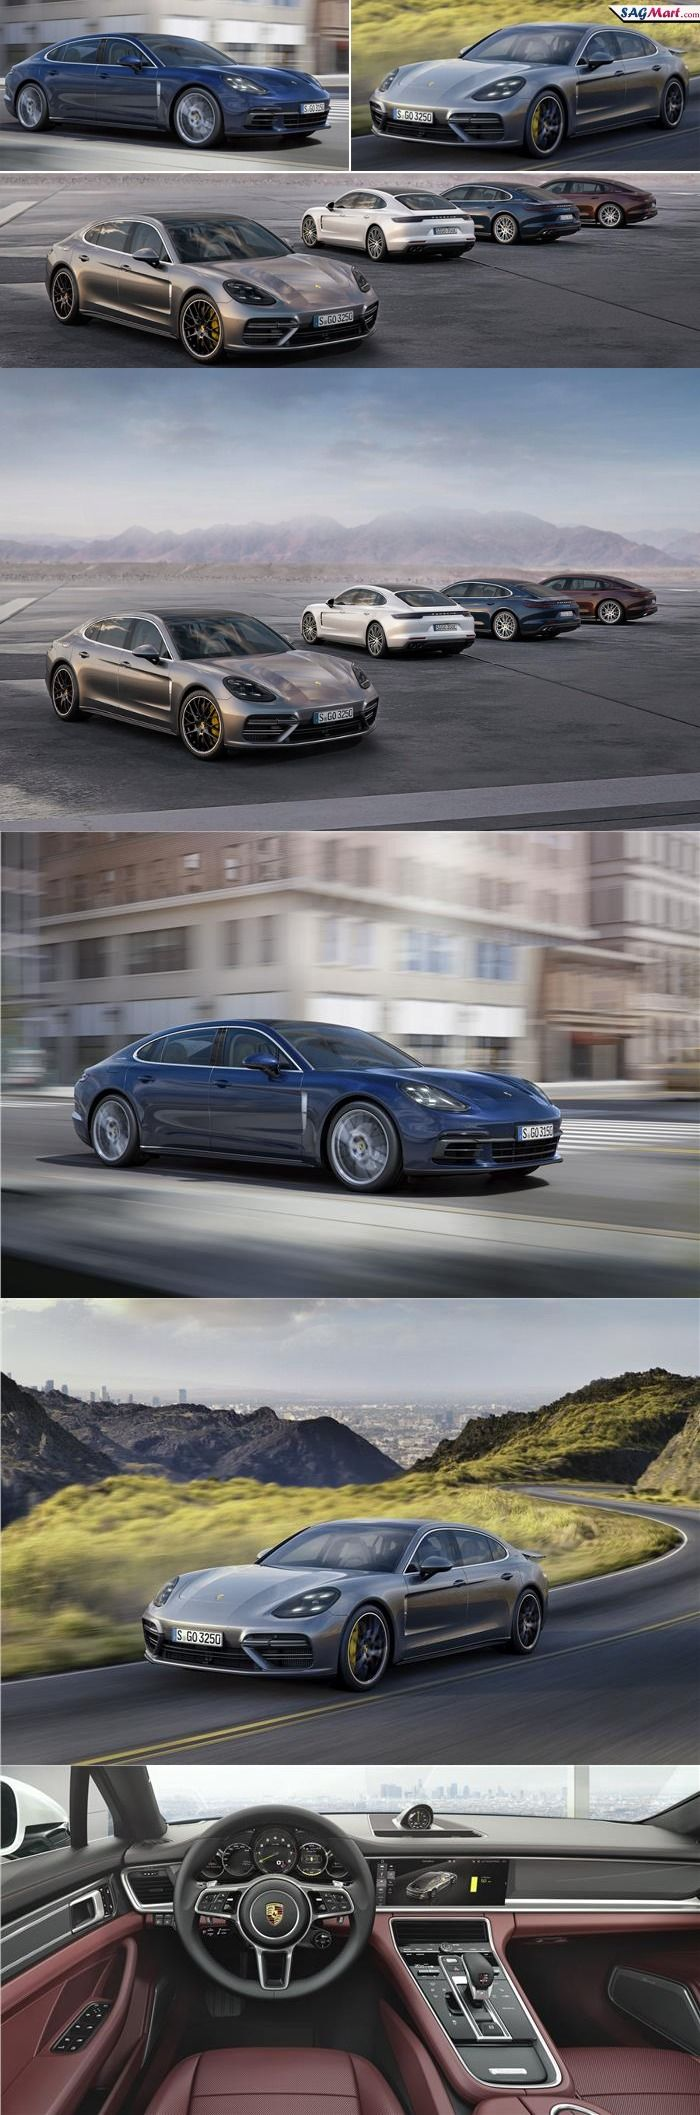 2017 Porsche Panamera Lineup Added Six New Models